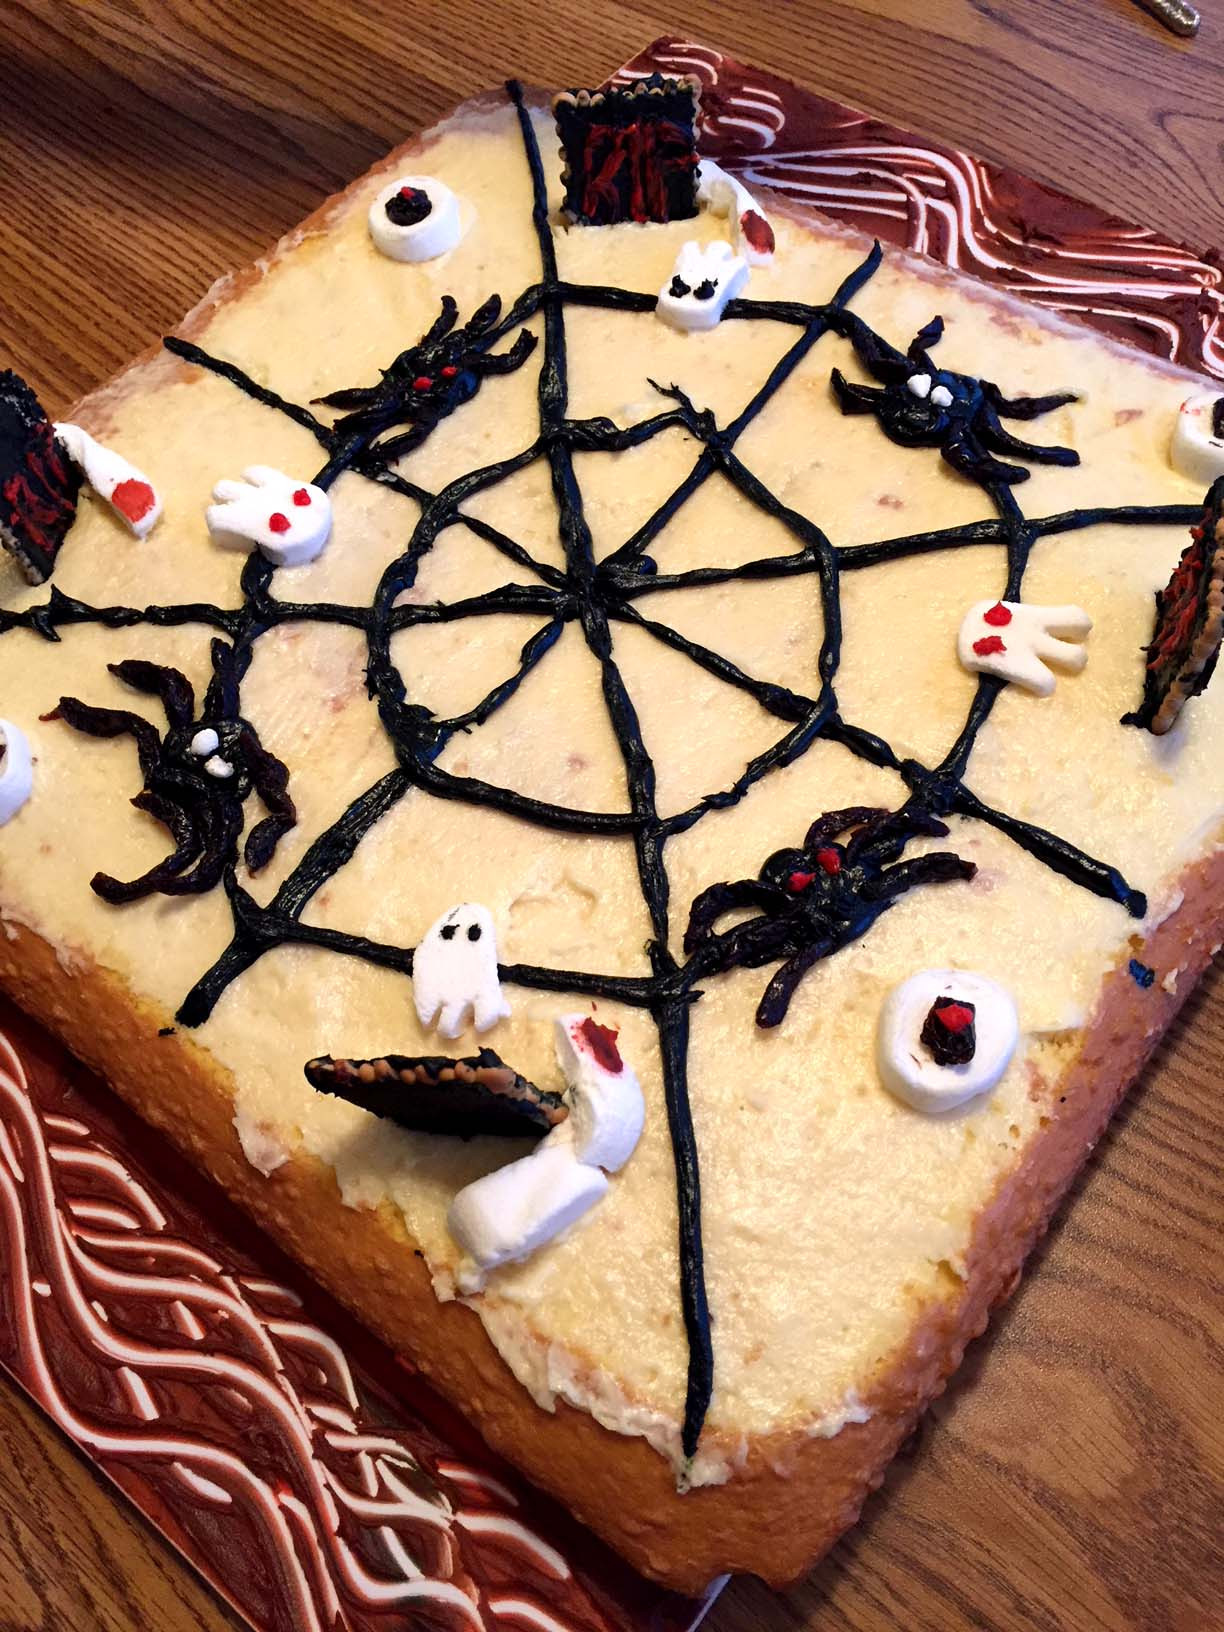 Halloween Decorating Cakes  Easy Halloween Cake Decorating Ideas For Spooky Cake